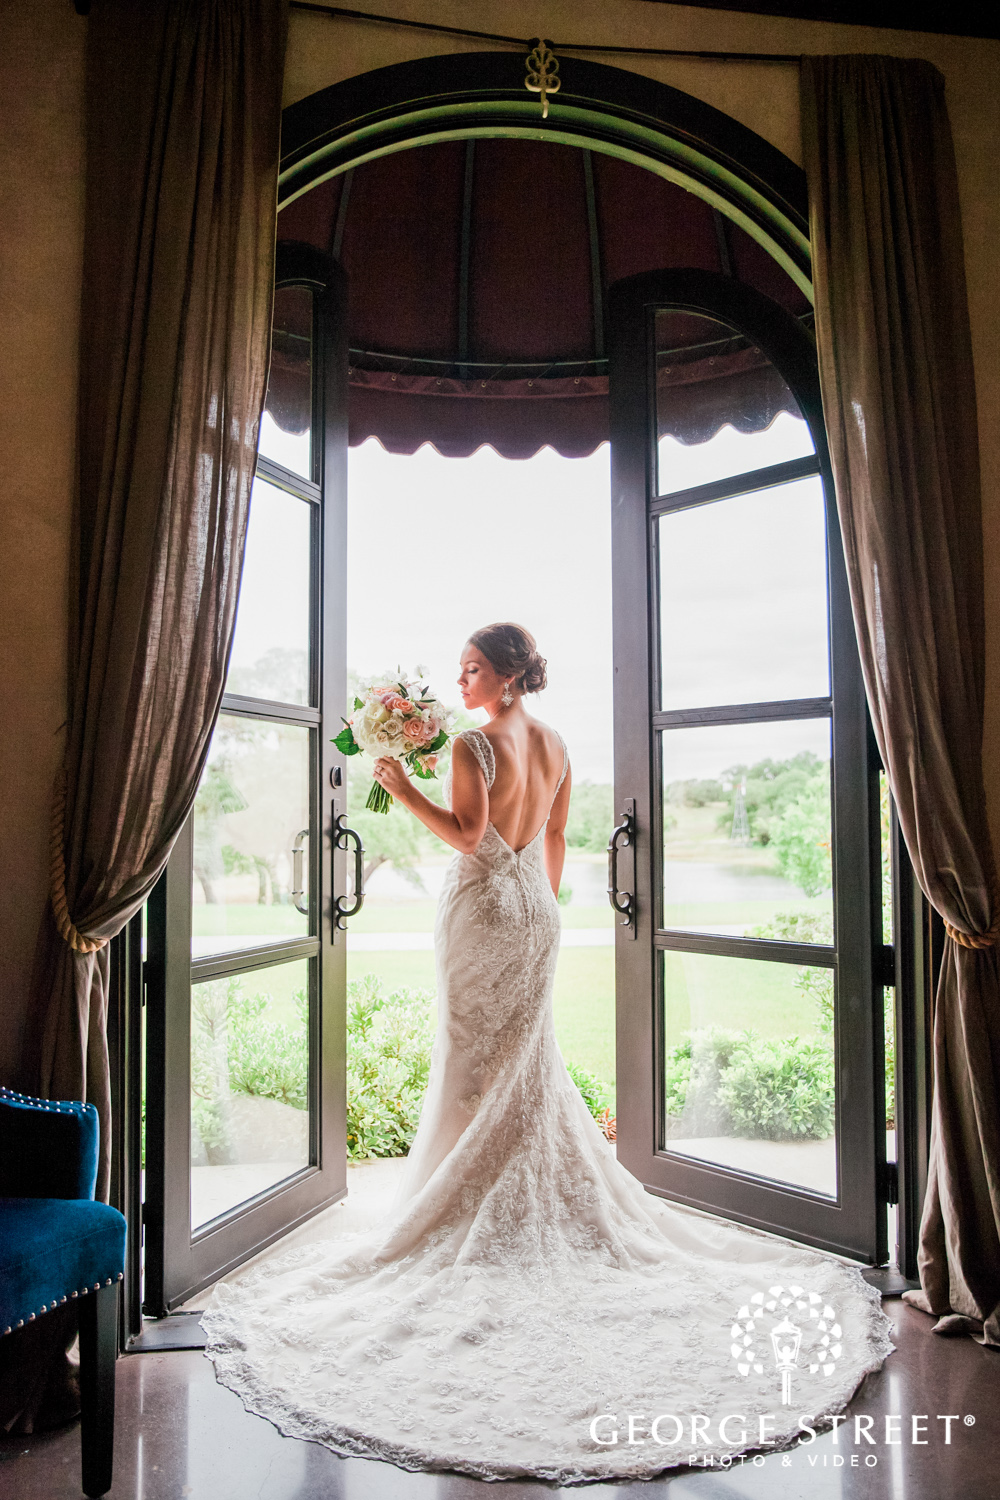 Practice Makes Perfect: Why Bridal Portraits Are a Must